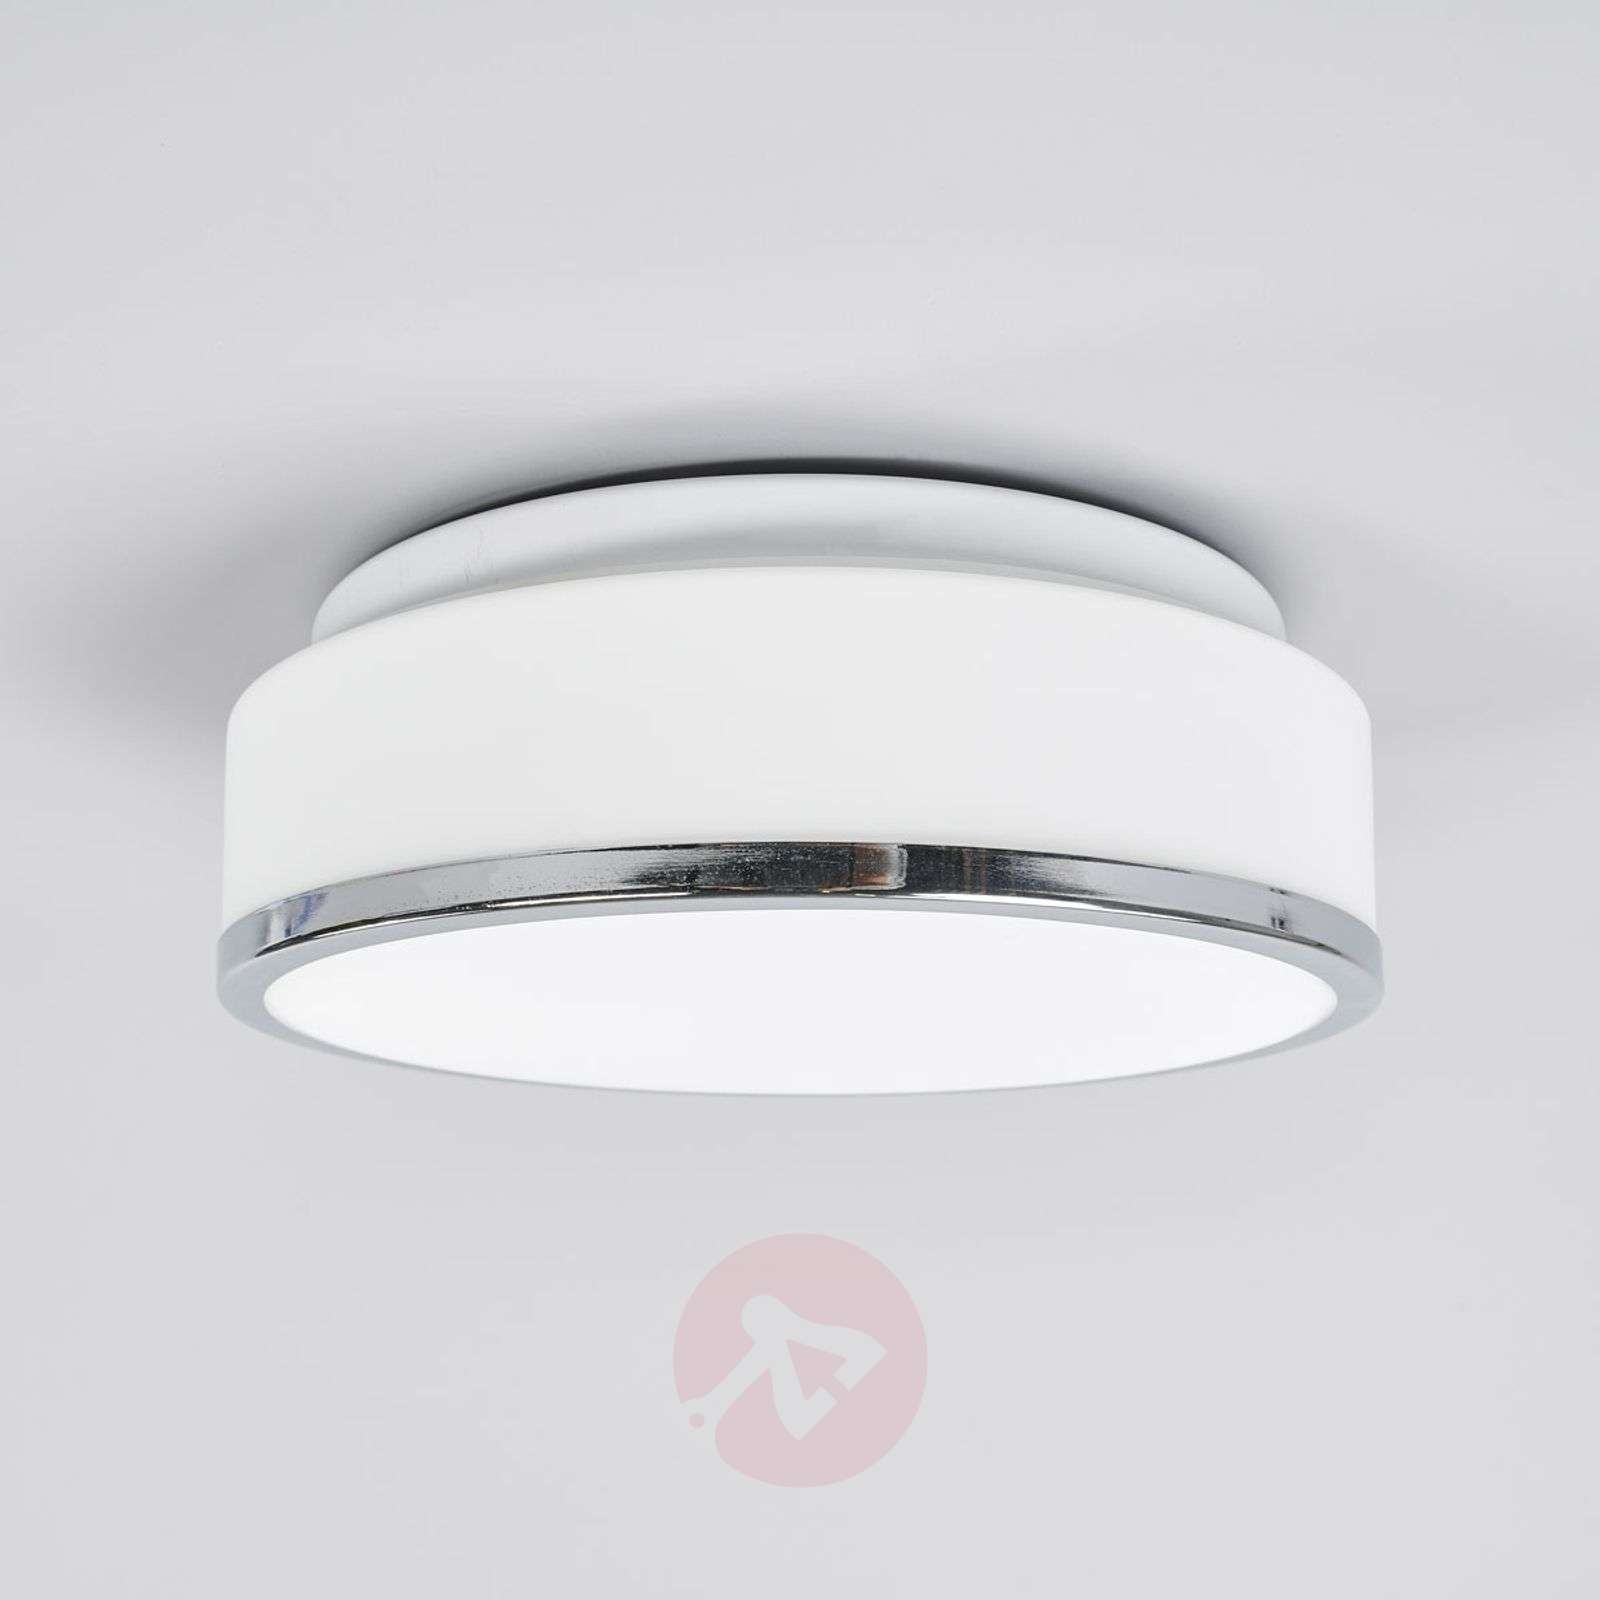 Flush discreet IP44 ceiling light-8570199-016